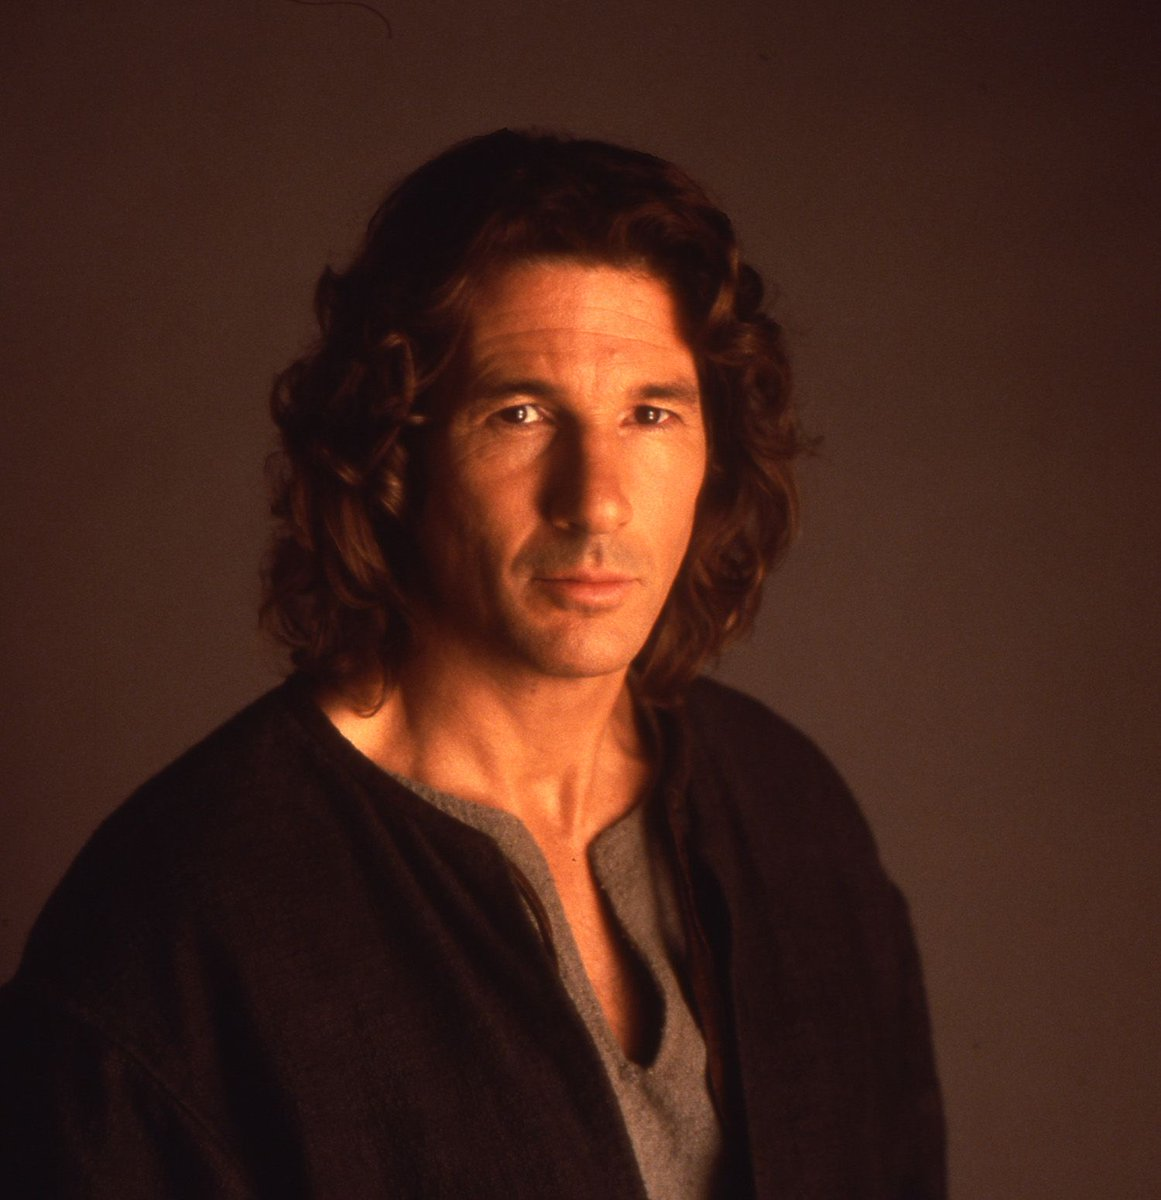 Gettv On Twitter Next Knights Of The Round Table In First Knight W Richardgere As Lancelot Seanconnery As King Arthur Juliaormond As Guinevere 9 Pm E Https T Co U9rnzwdtfl